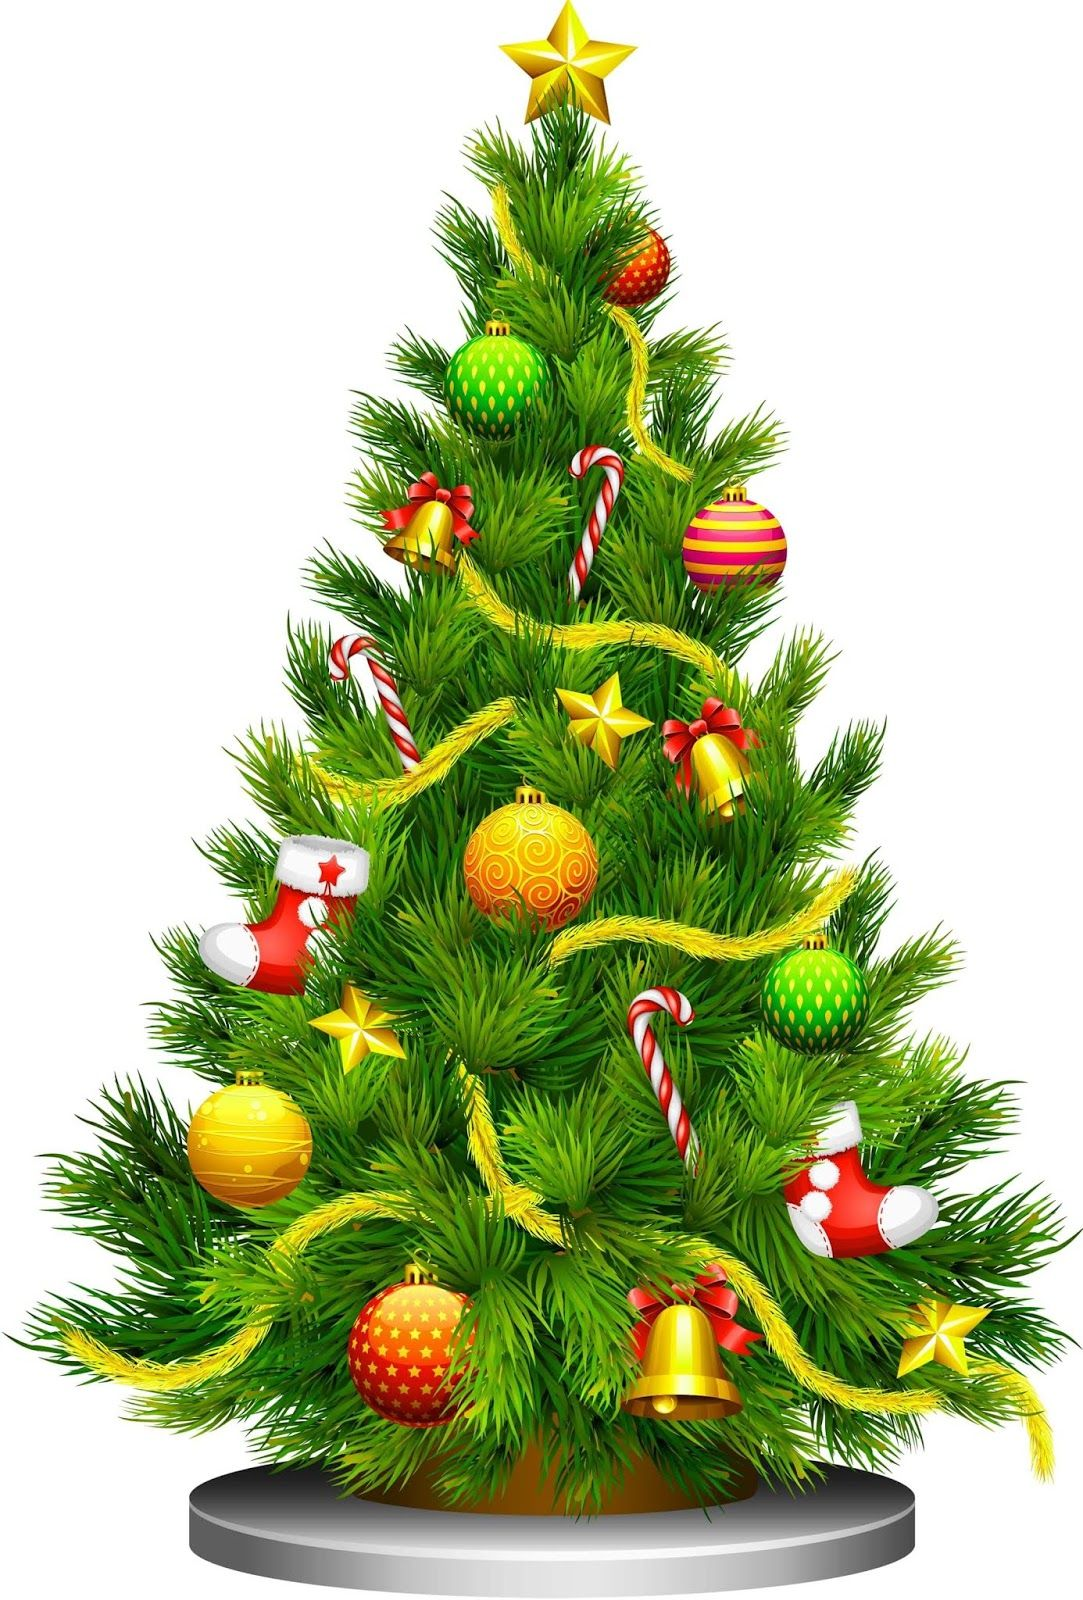 Christmas Tree Images Clip Art Free Download Christmas Tree Images Christmas Tree Clipart Christmas Tree With Presents